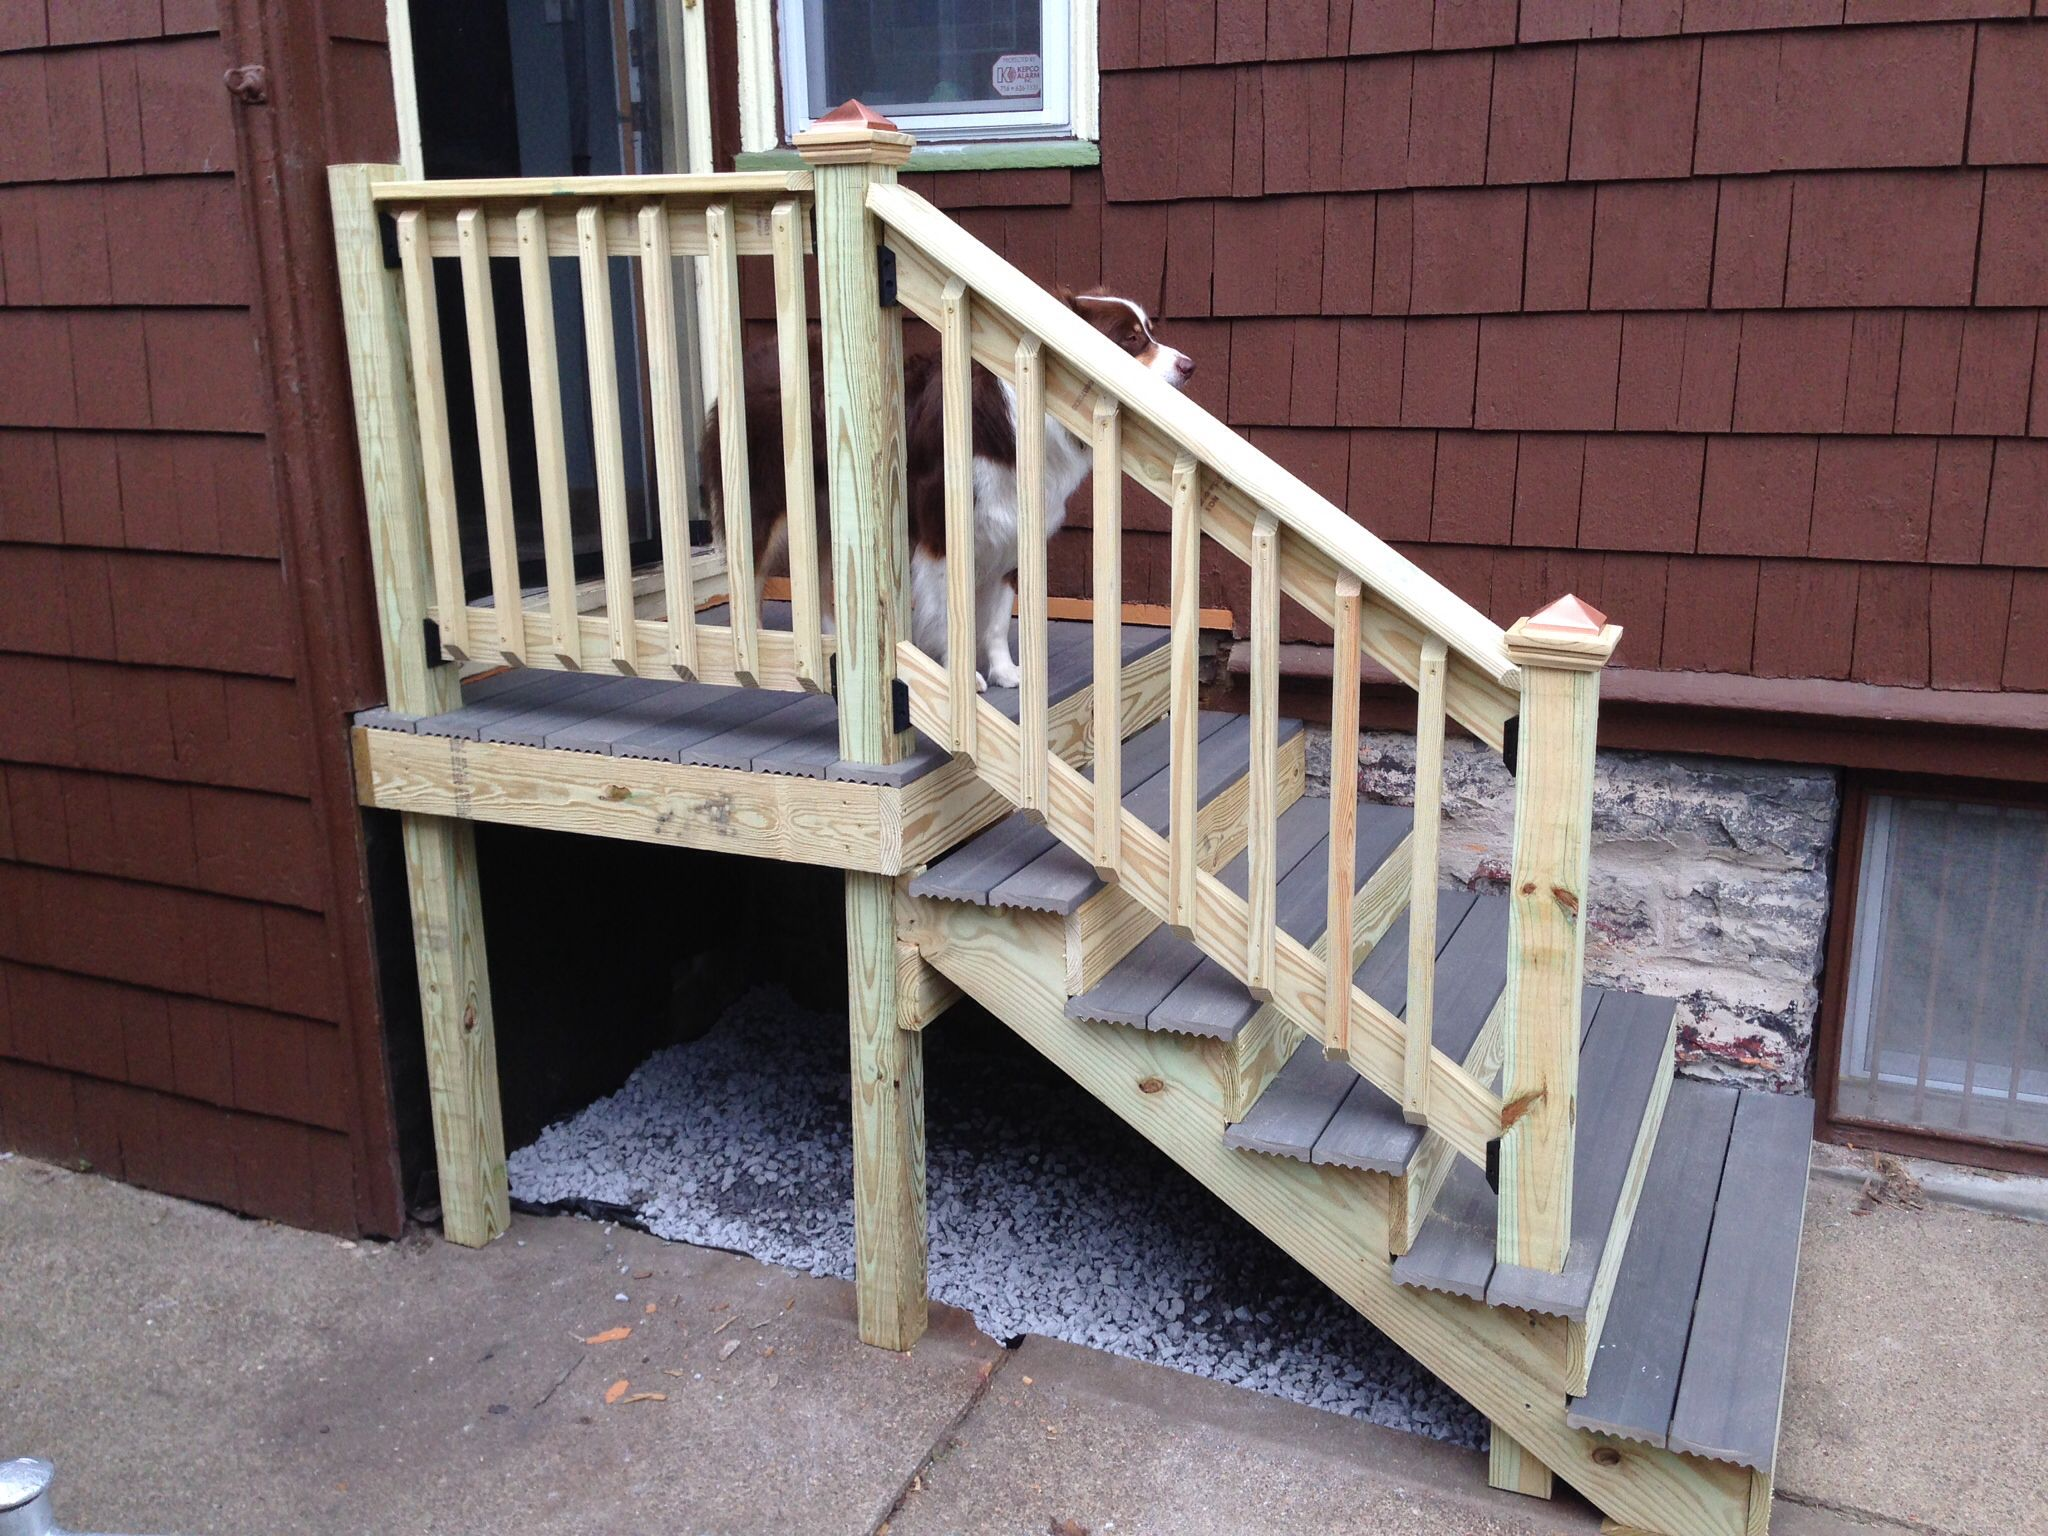 Best New Stairs For The Side Entrance Of The House Far Safer 640 x 480